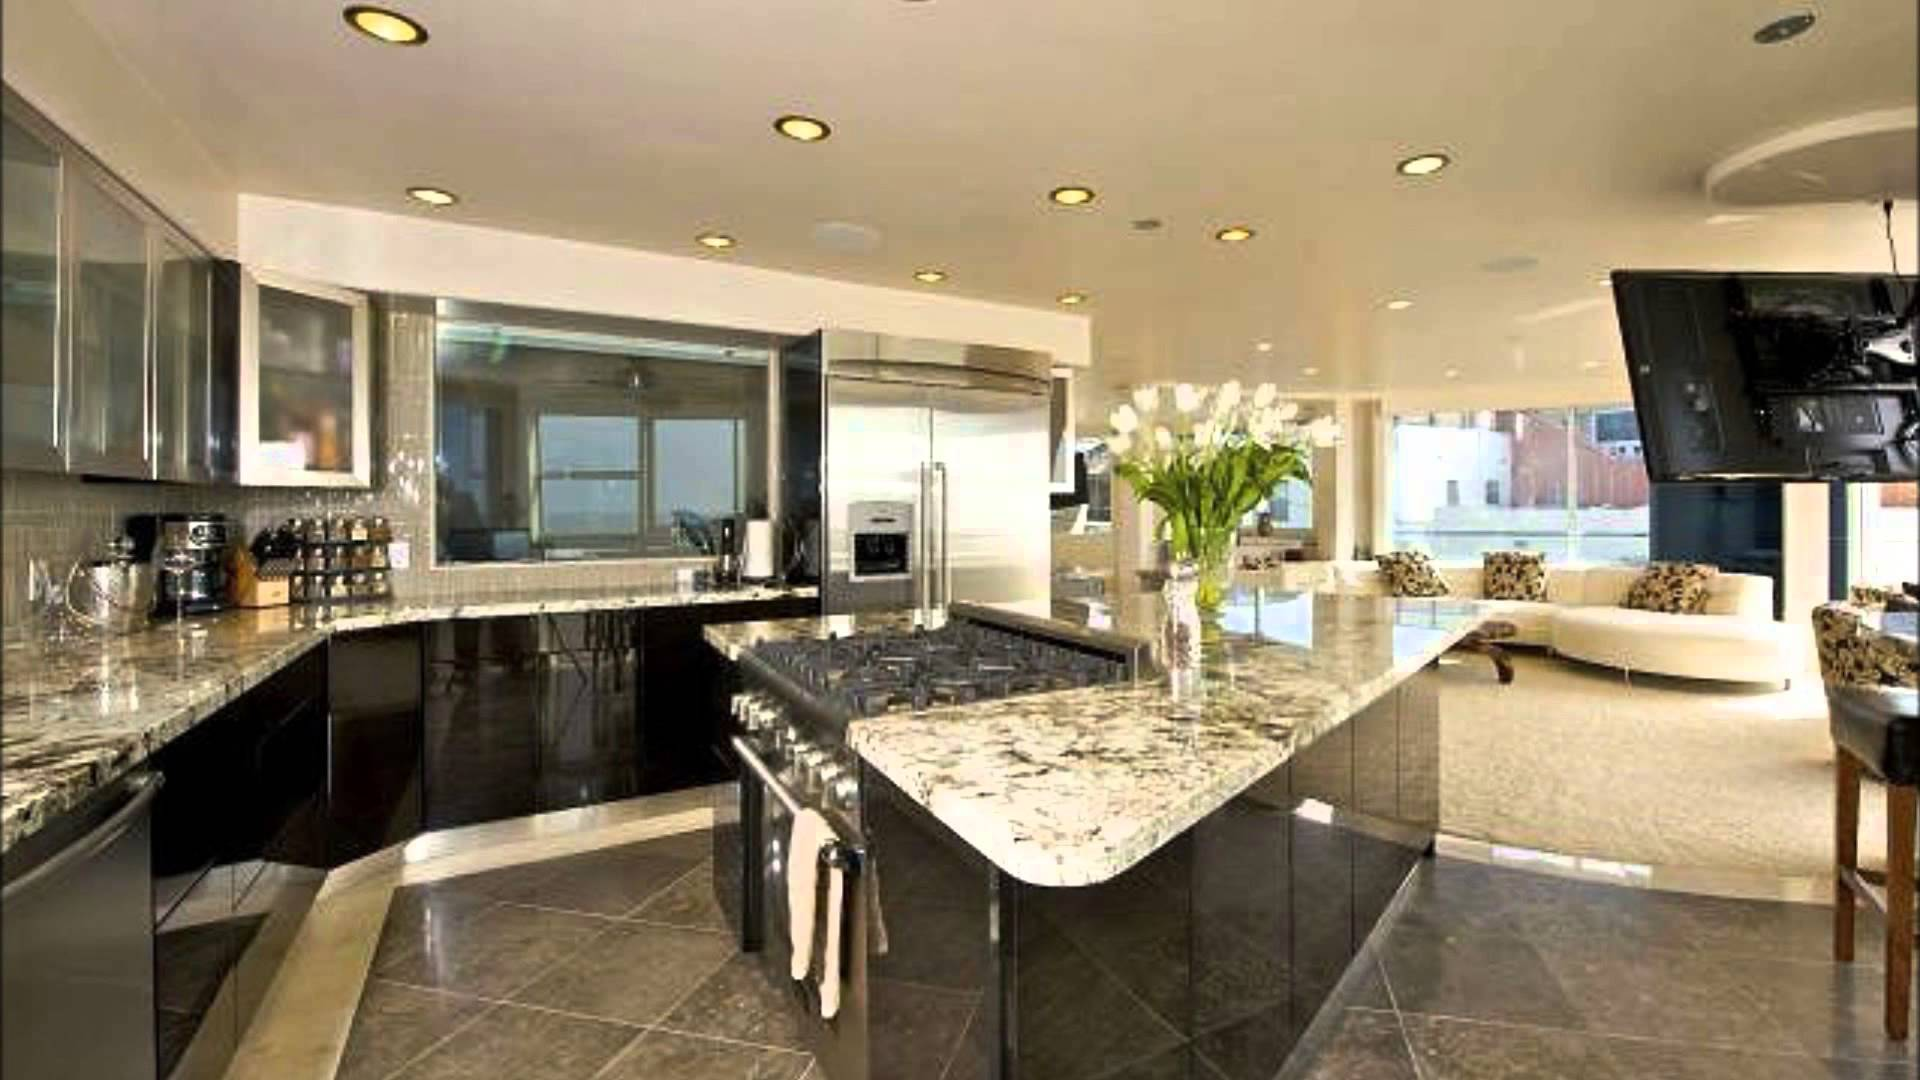 Design your own kitchen ideas with images Kitchen layouts